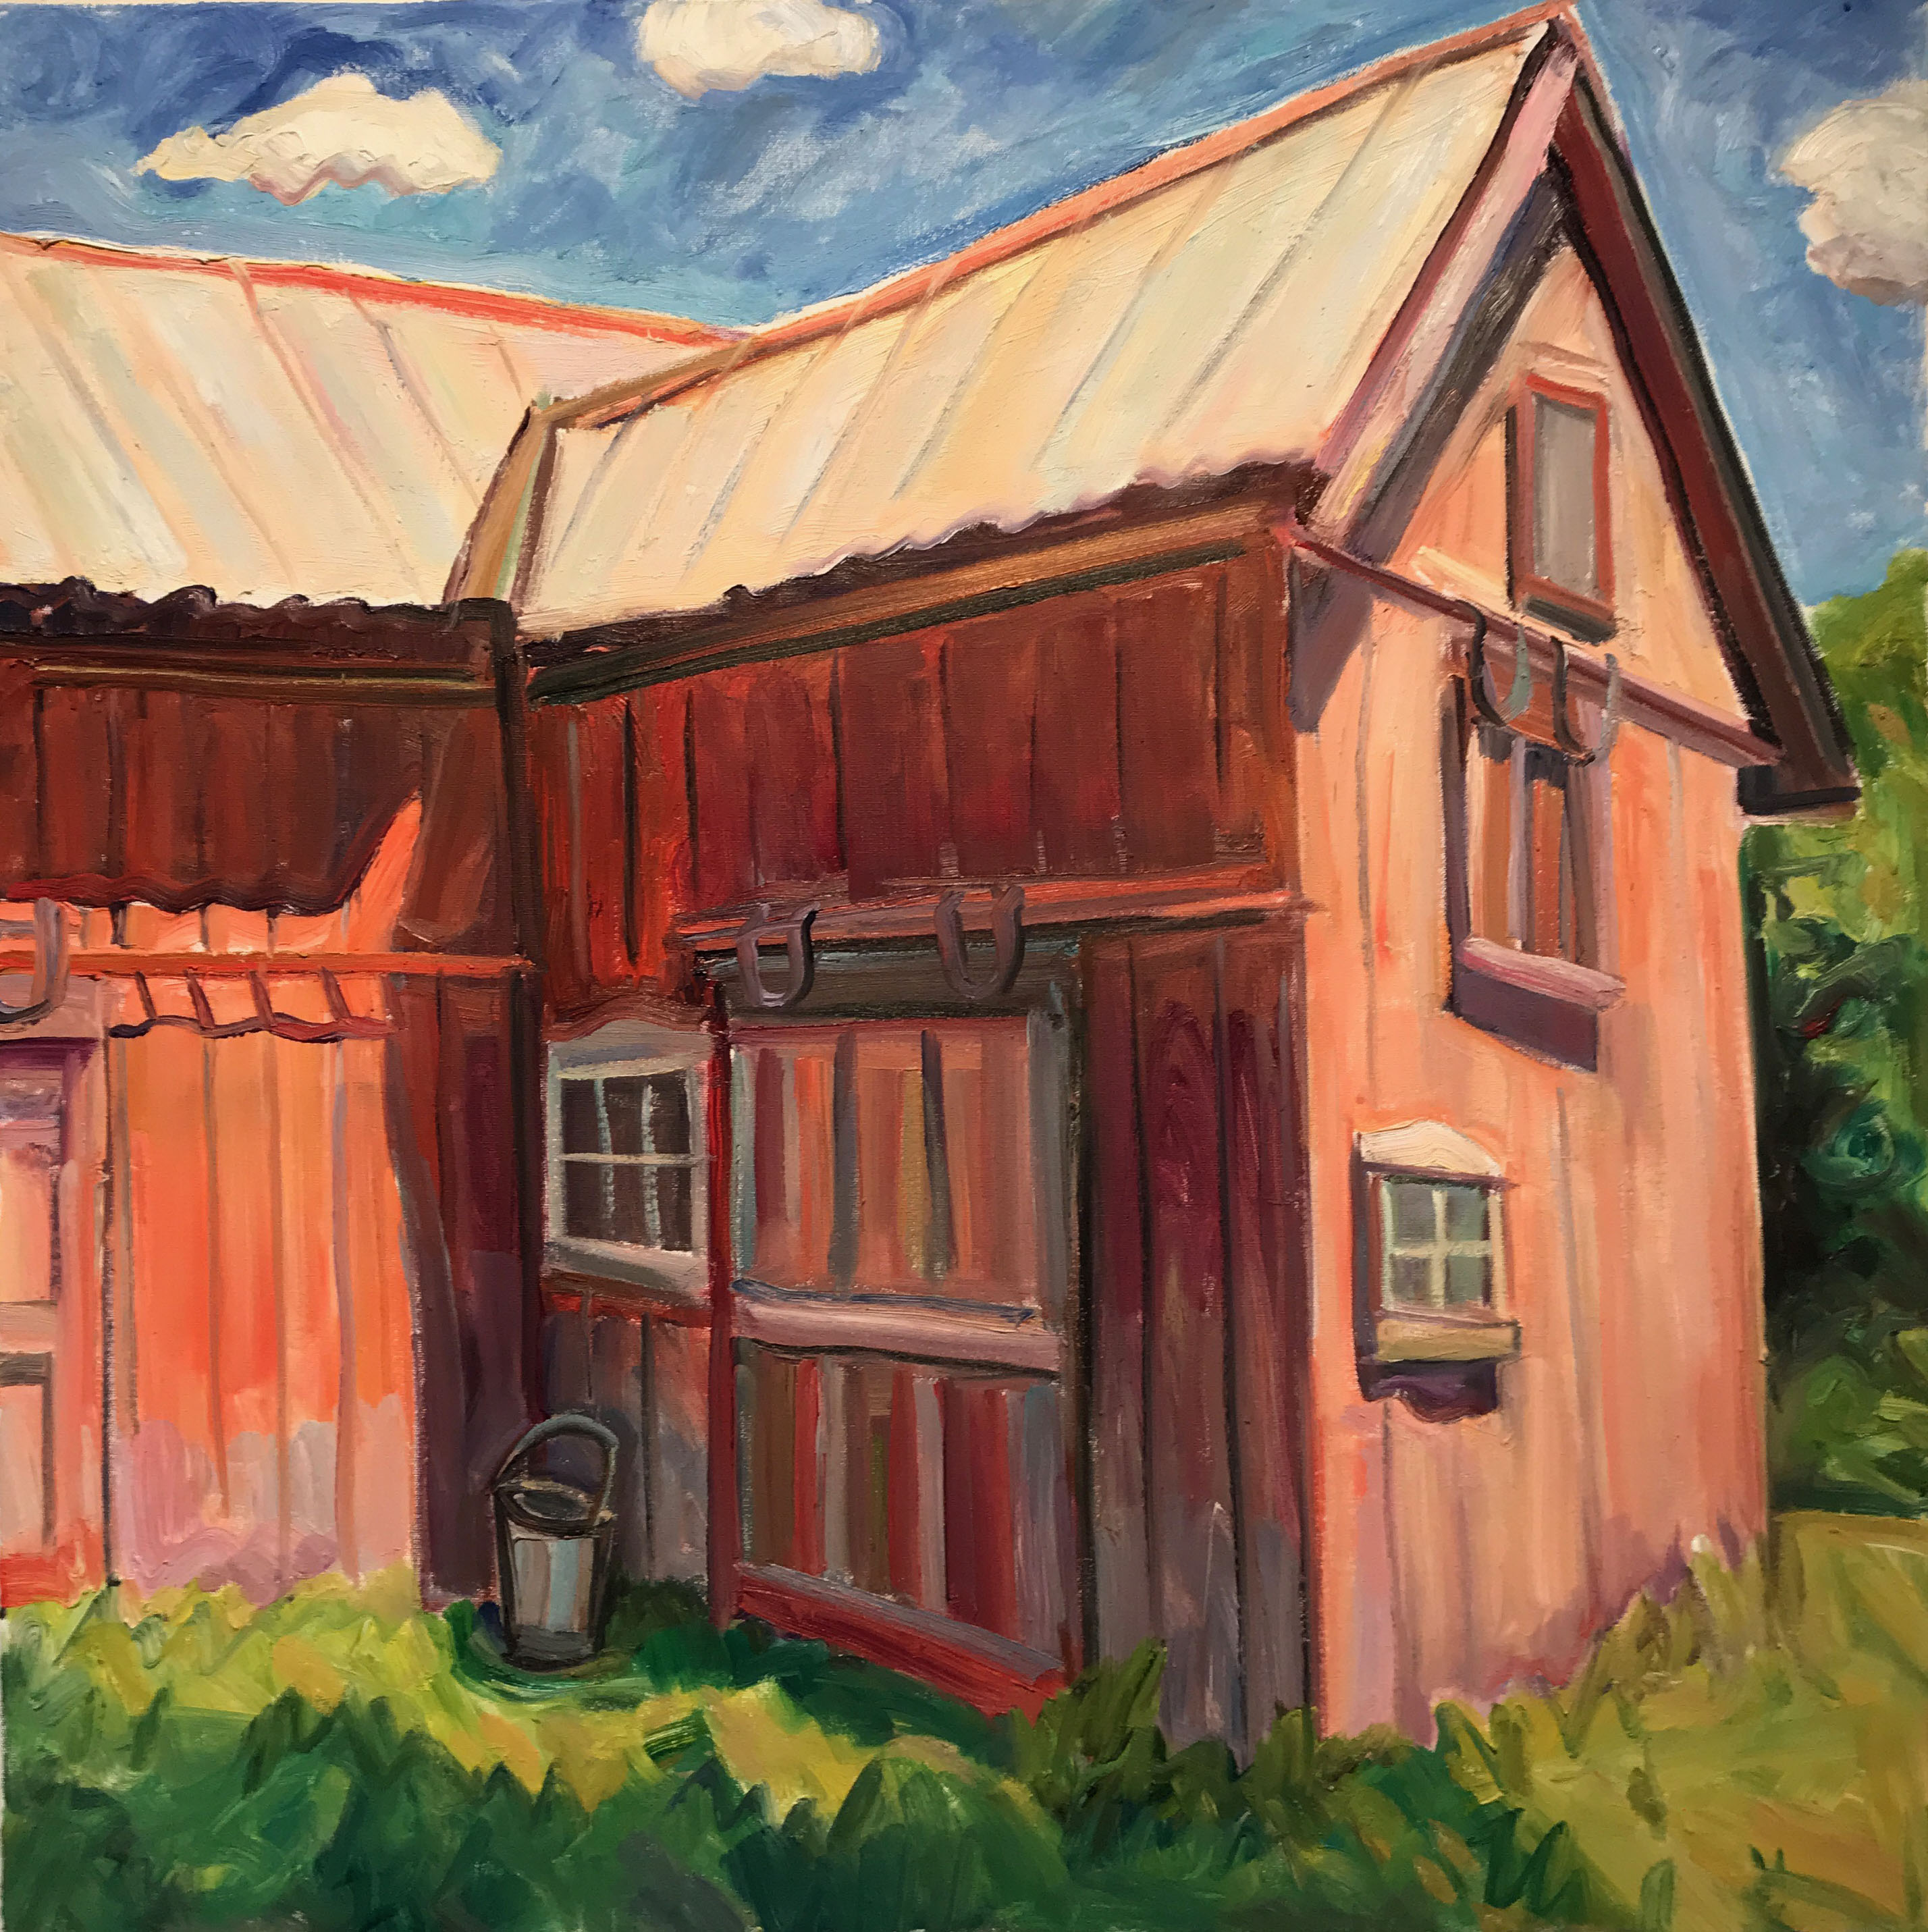 Red Barn with Bucket in Sunlight